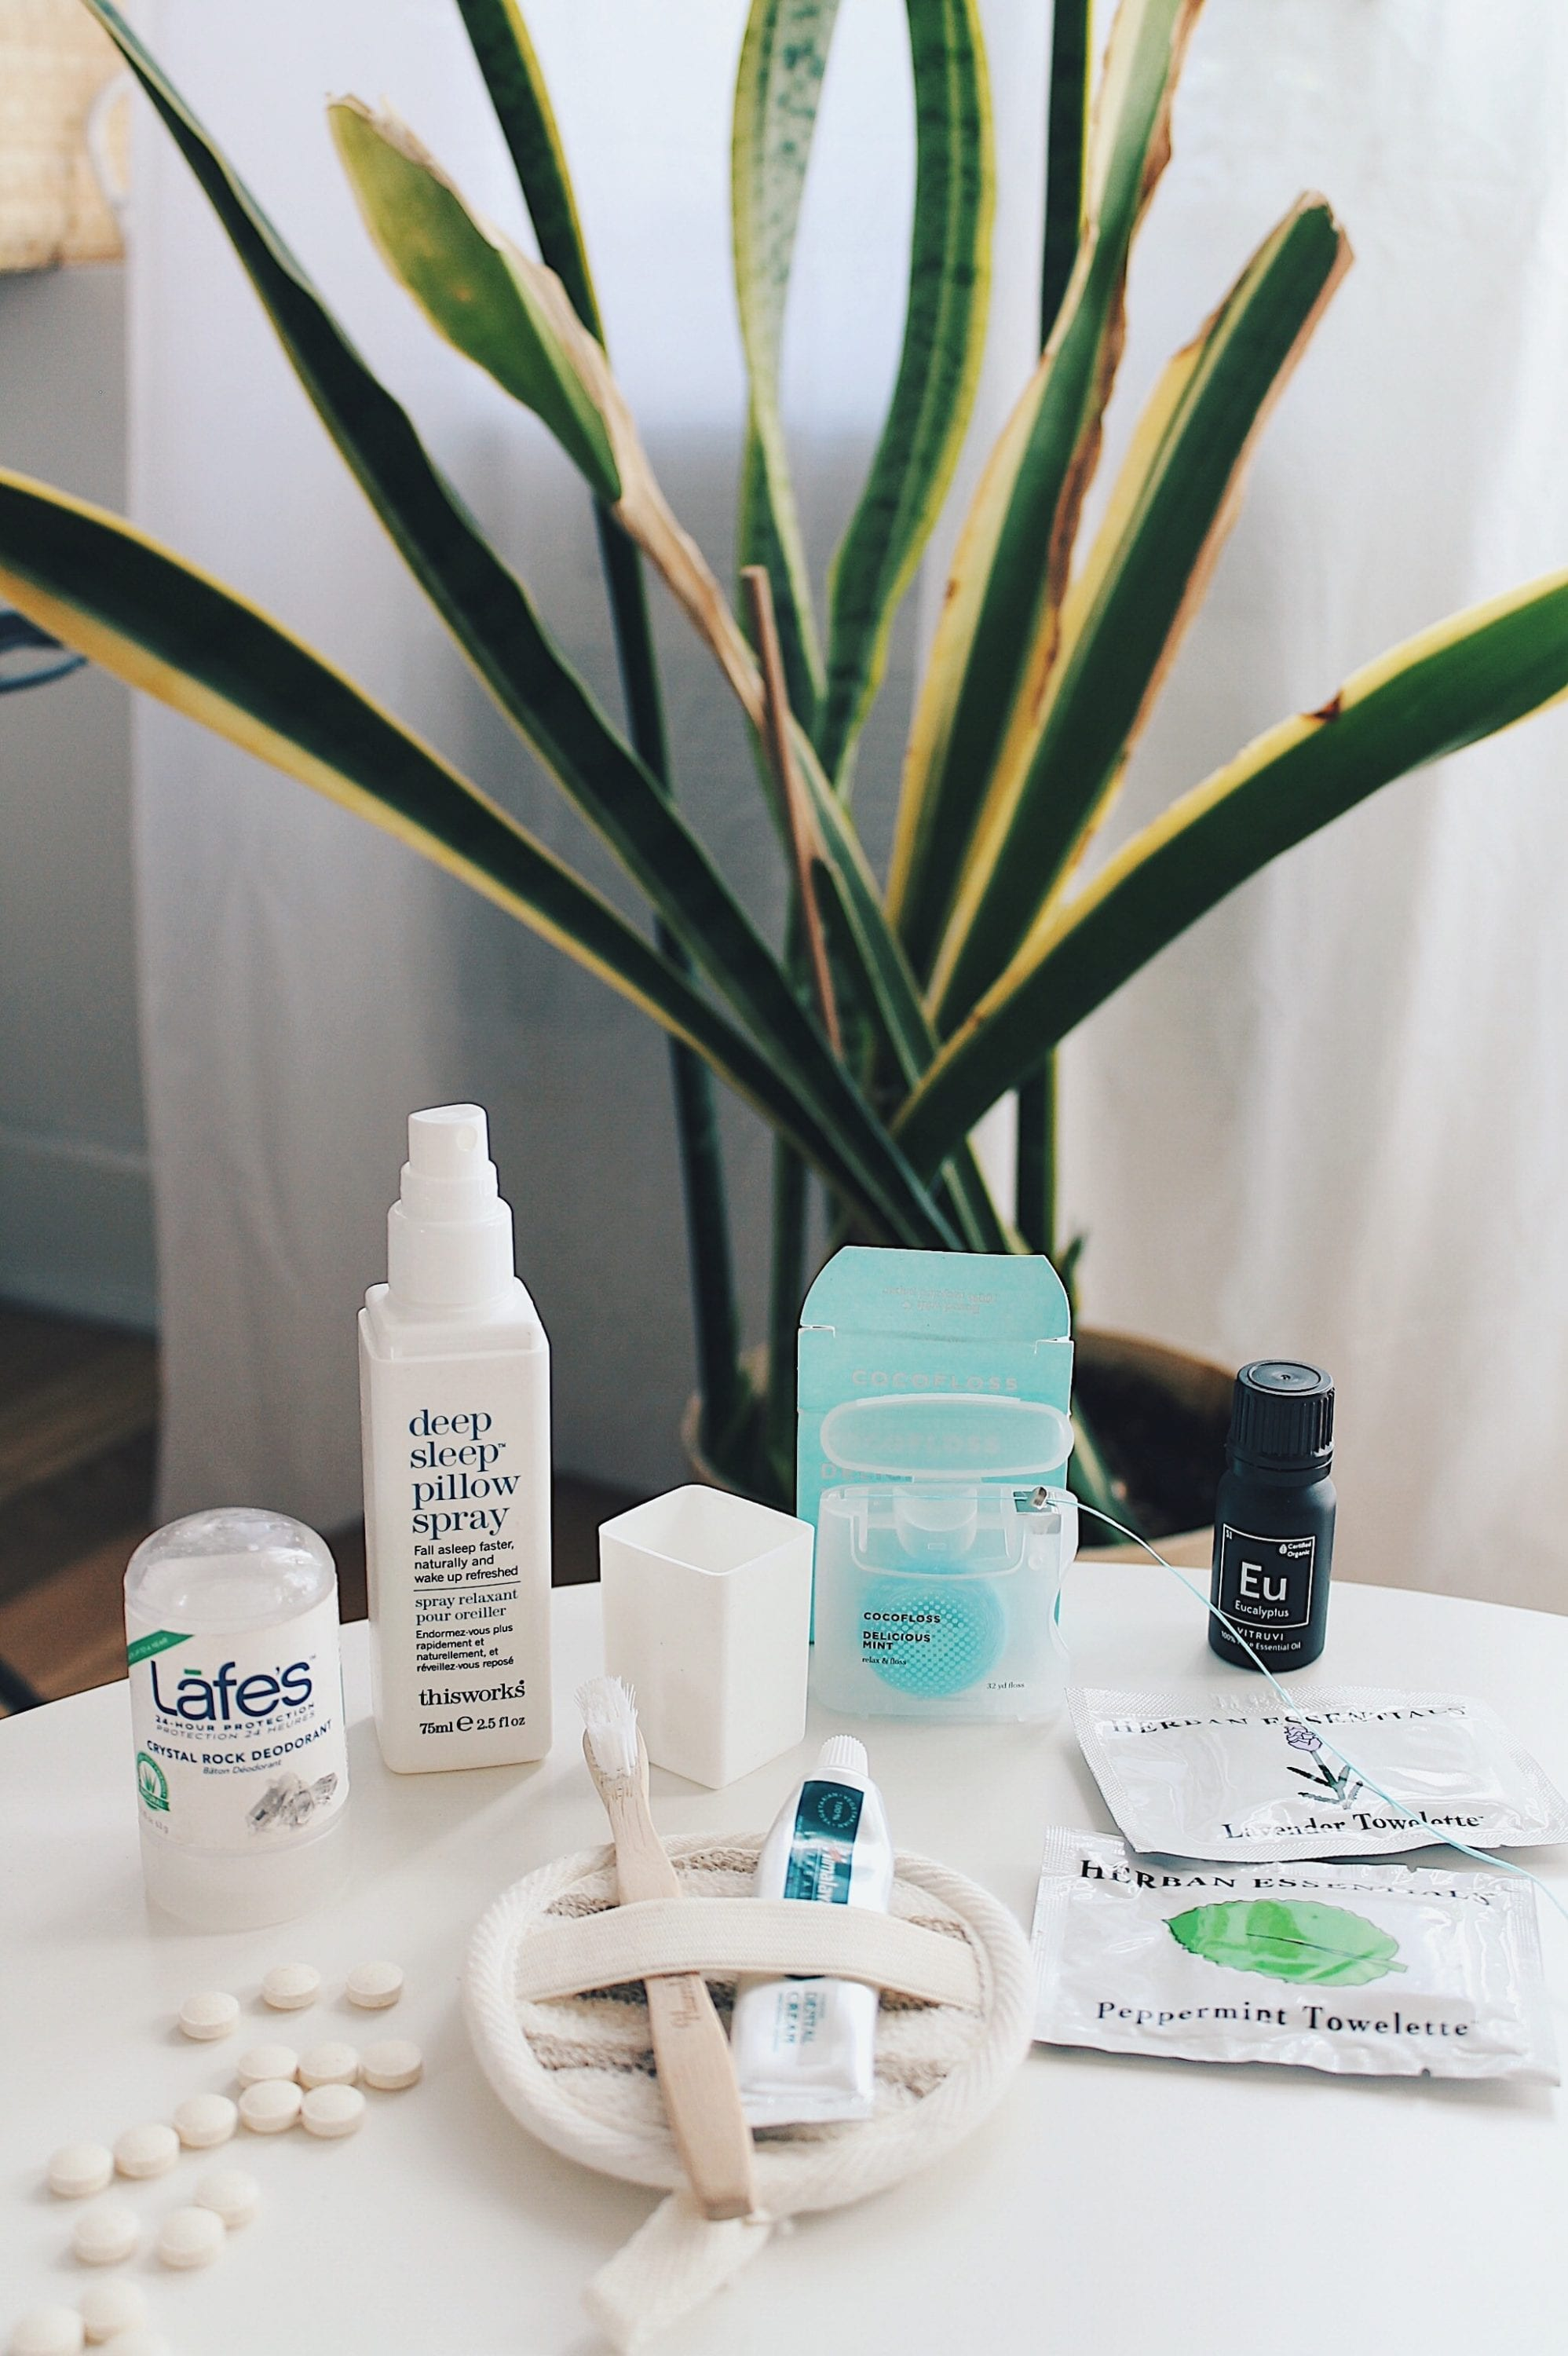 items for travel wellness